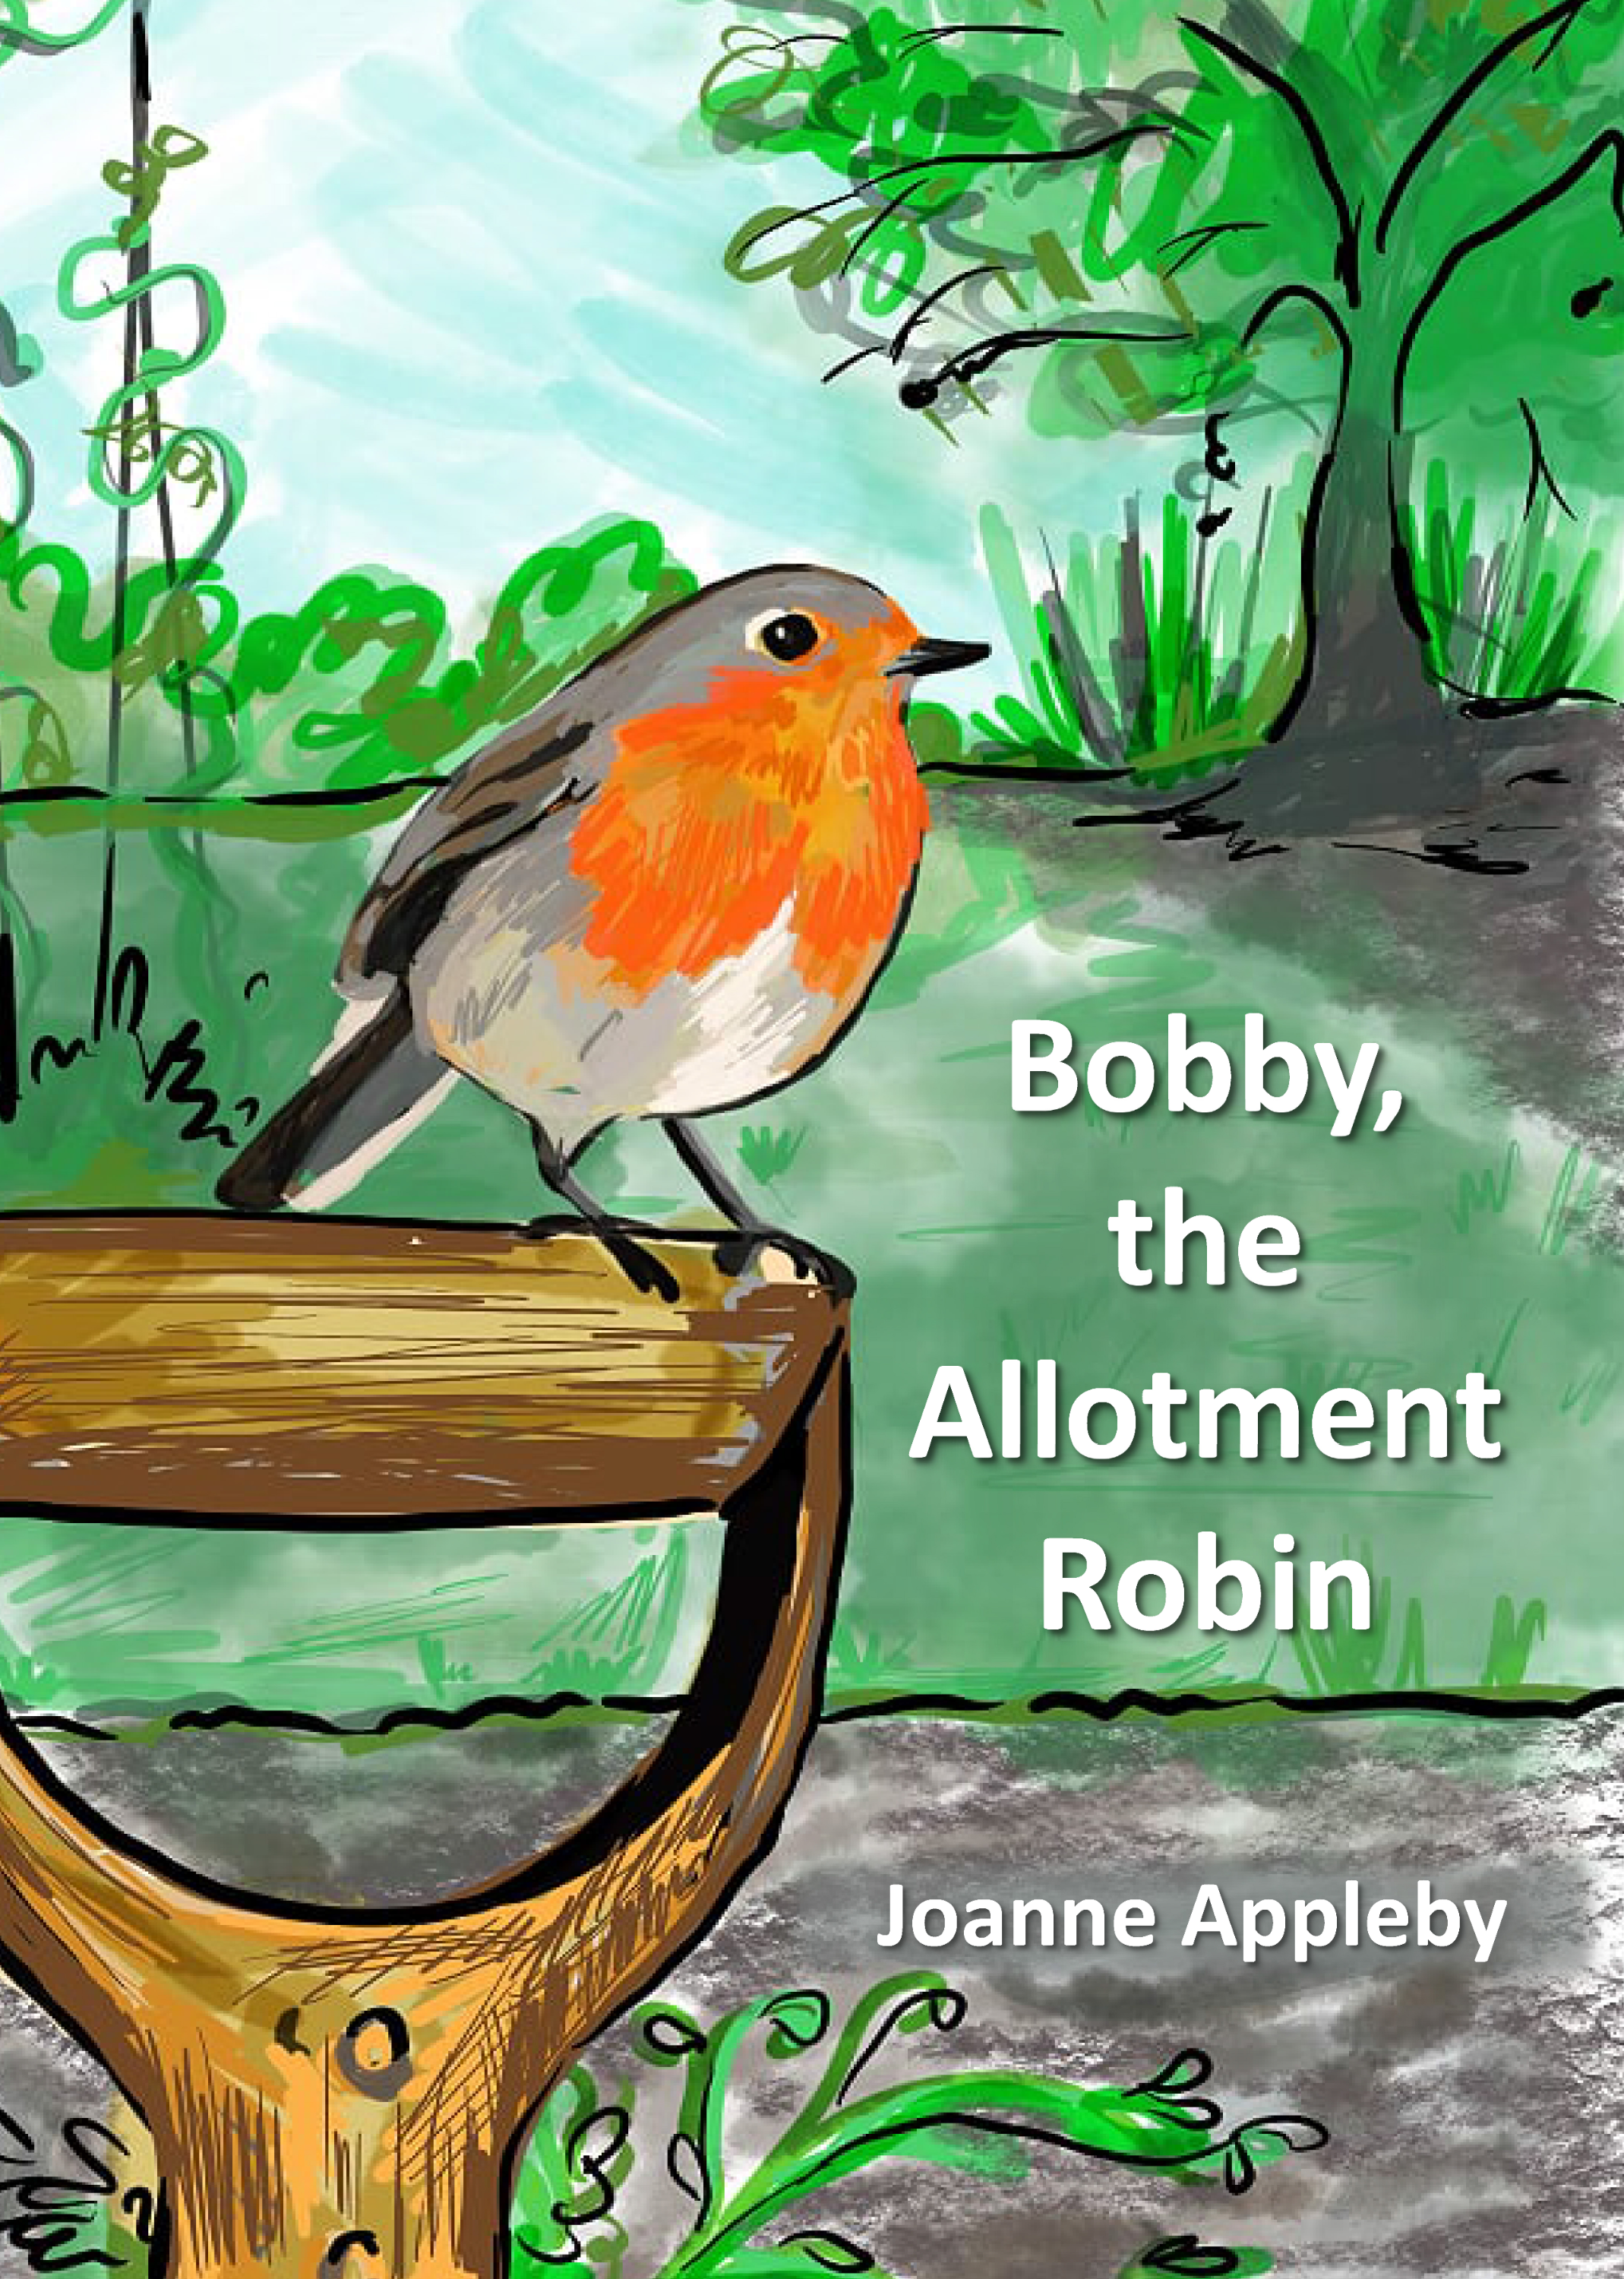 Bobby, the Allotment Robin